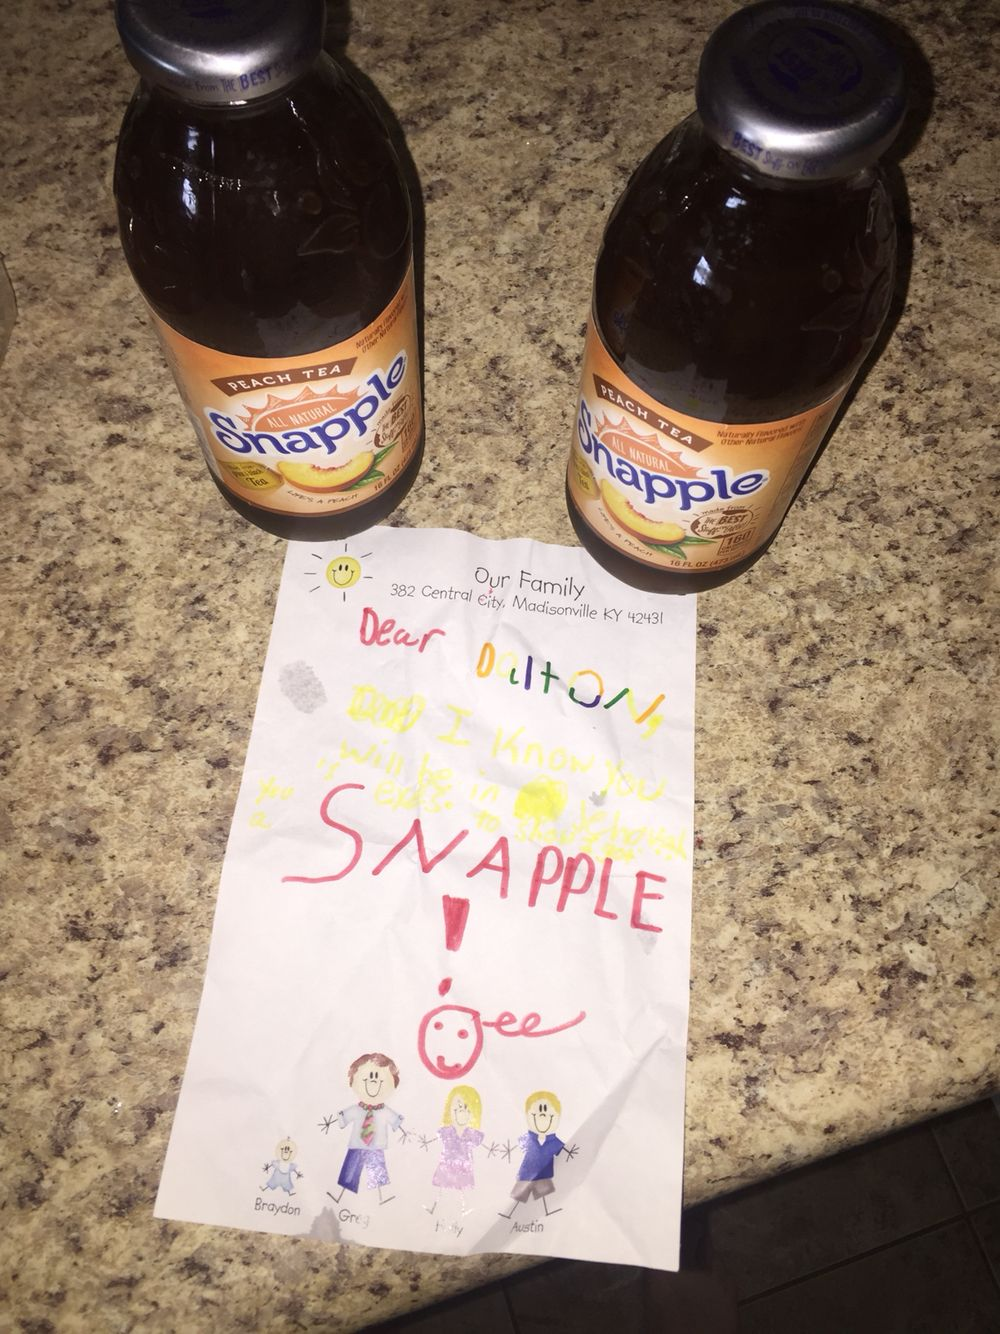 """It was pretty good. Brayden got me two snapples and wrote me this note. It says, """"I know you will be in Jehovah's eyes. To show you, here's a snapple.""""  I love'em. I love Brayden. Haha. My mom put a really long scripture on my cake and I felt weird about that and my mom also asked a guy to play some music and he took it way too seriously and literally set up a stage. It took him three days to set it up and we had to help him take it all down. That was really annoying. Haha. My family came…"""